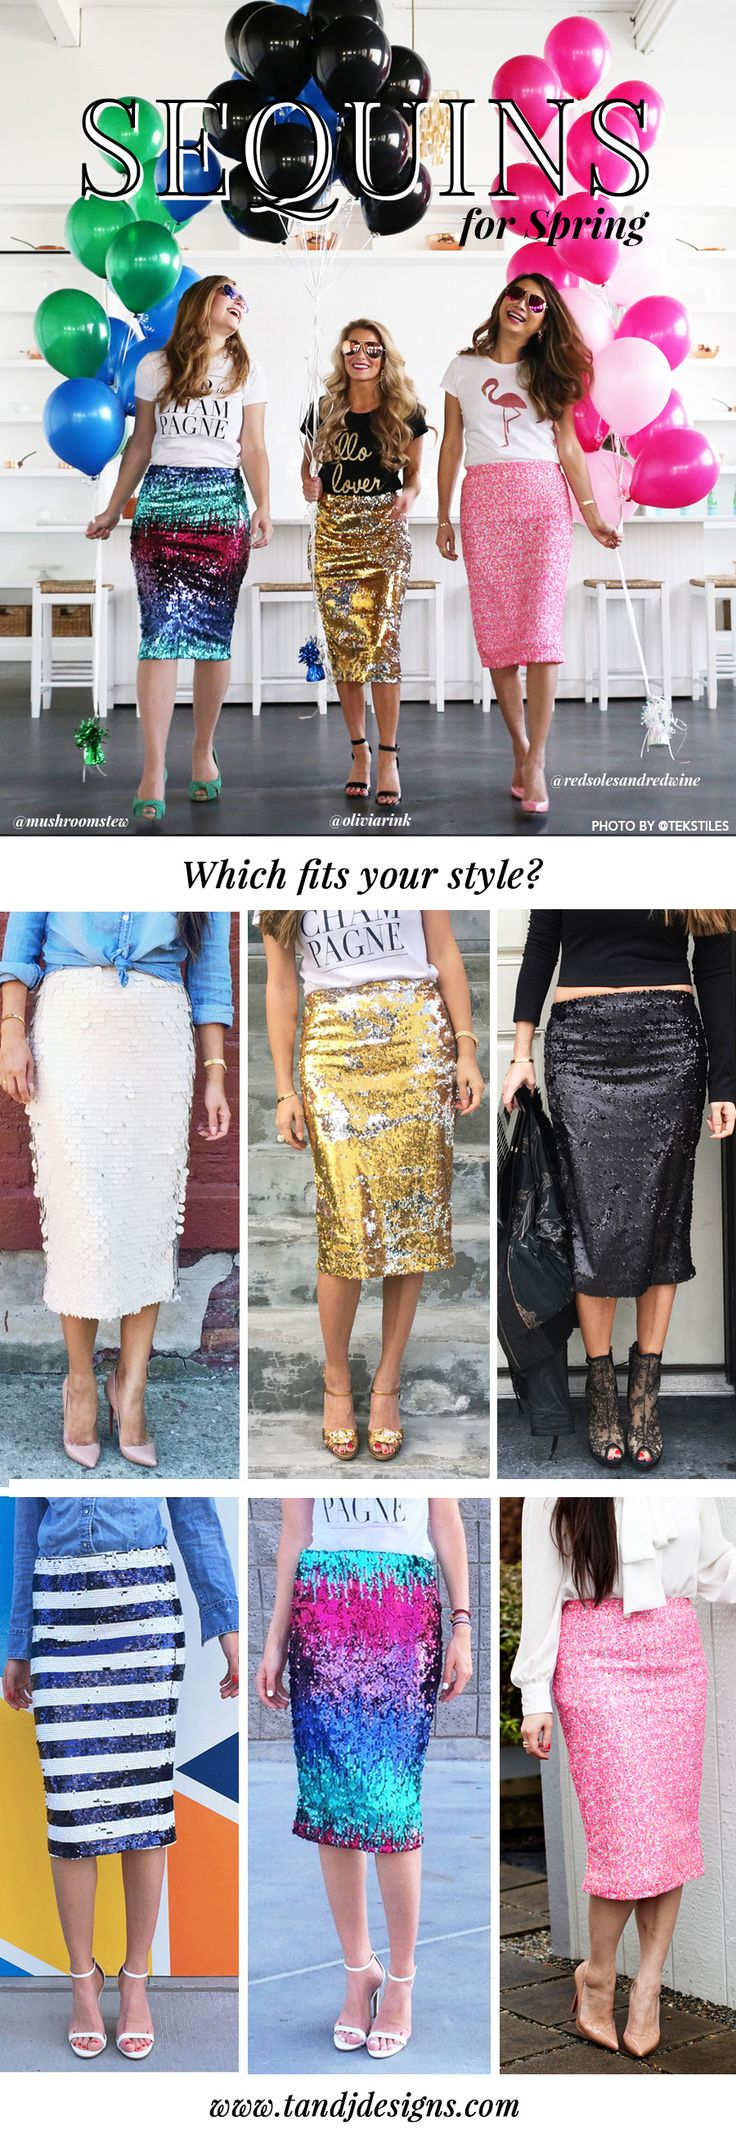 Every girls dream! Sequin skirts in every color - Which fits your style?